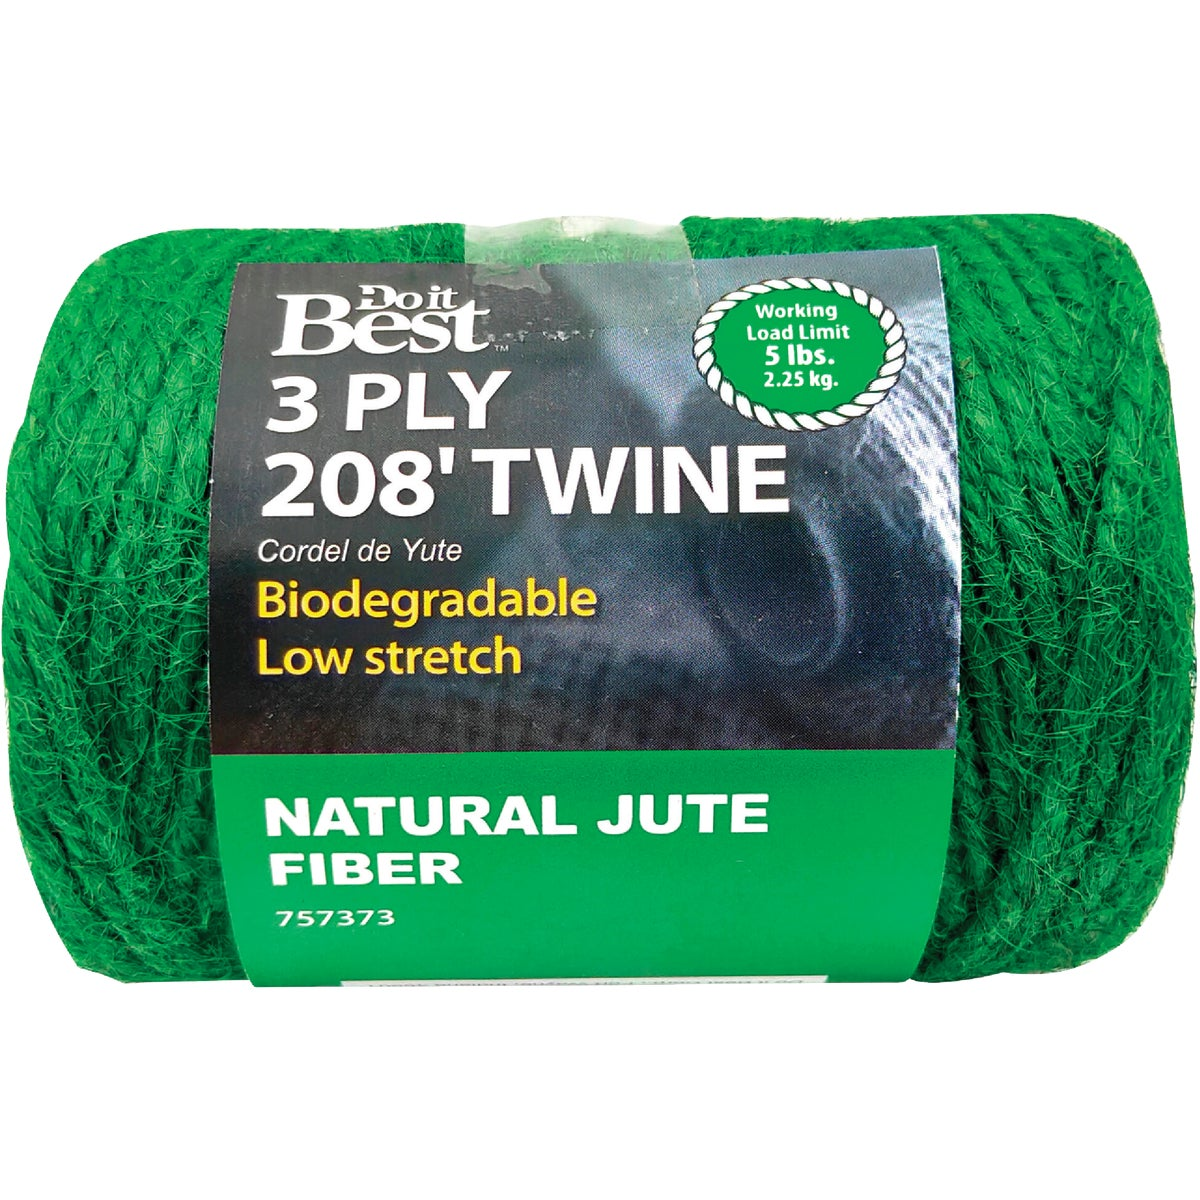 208' 3PLY JUTE TWINE - 757373 by Do it Best